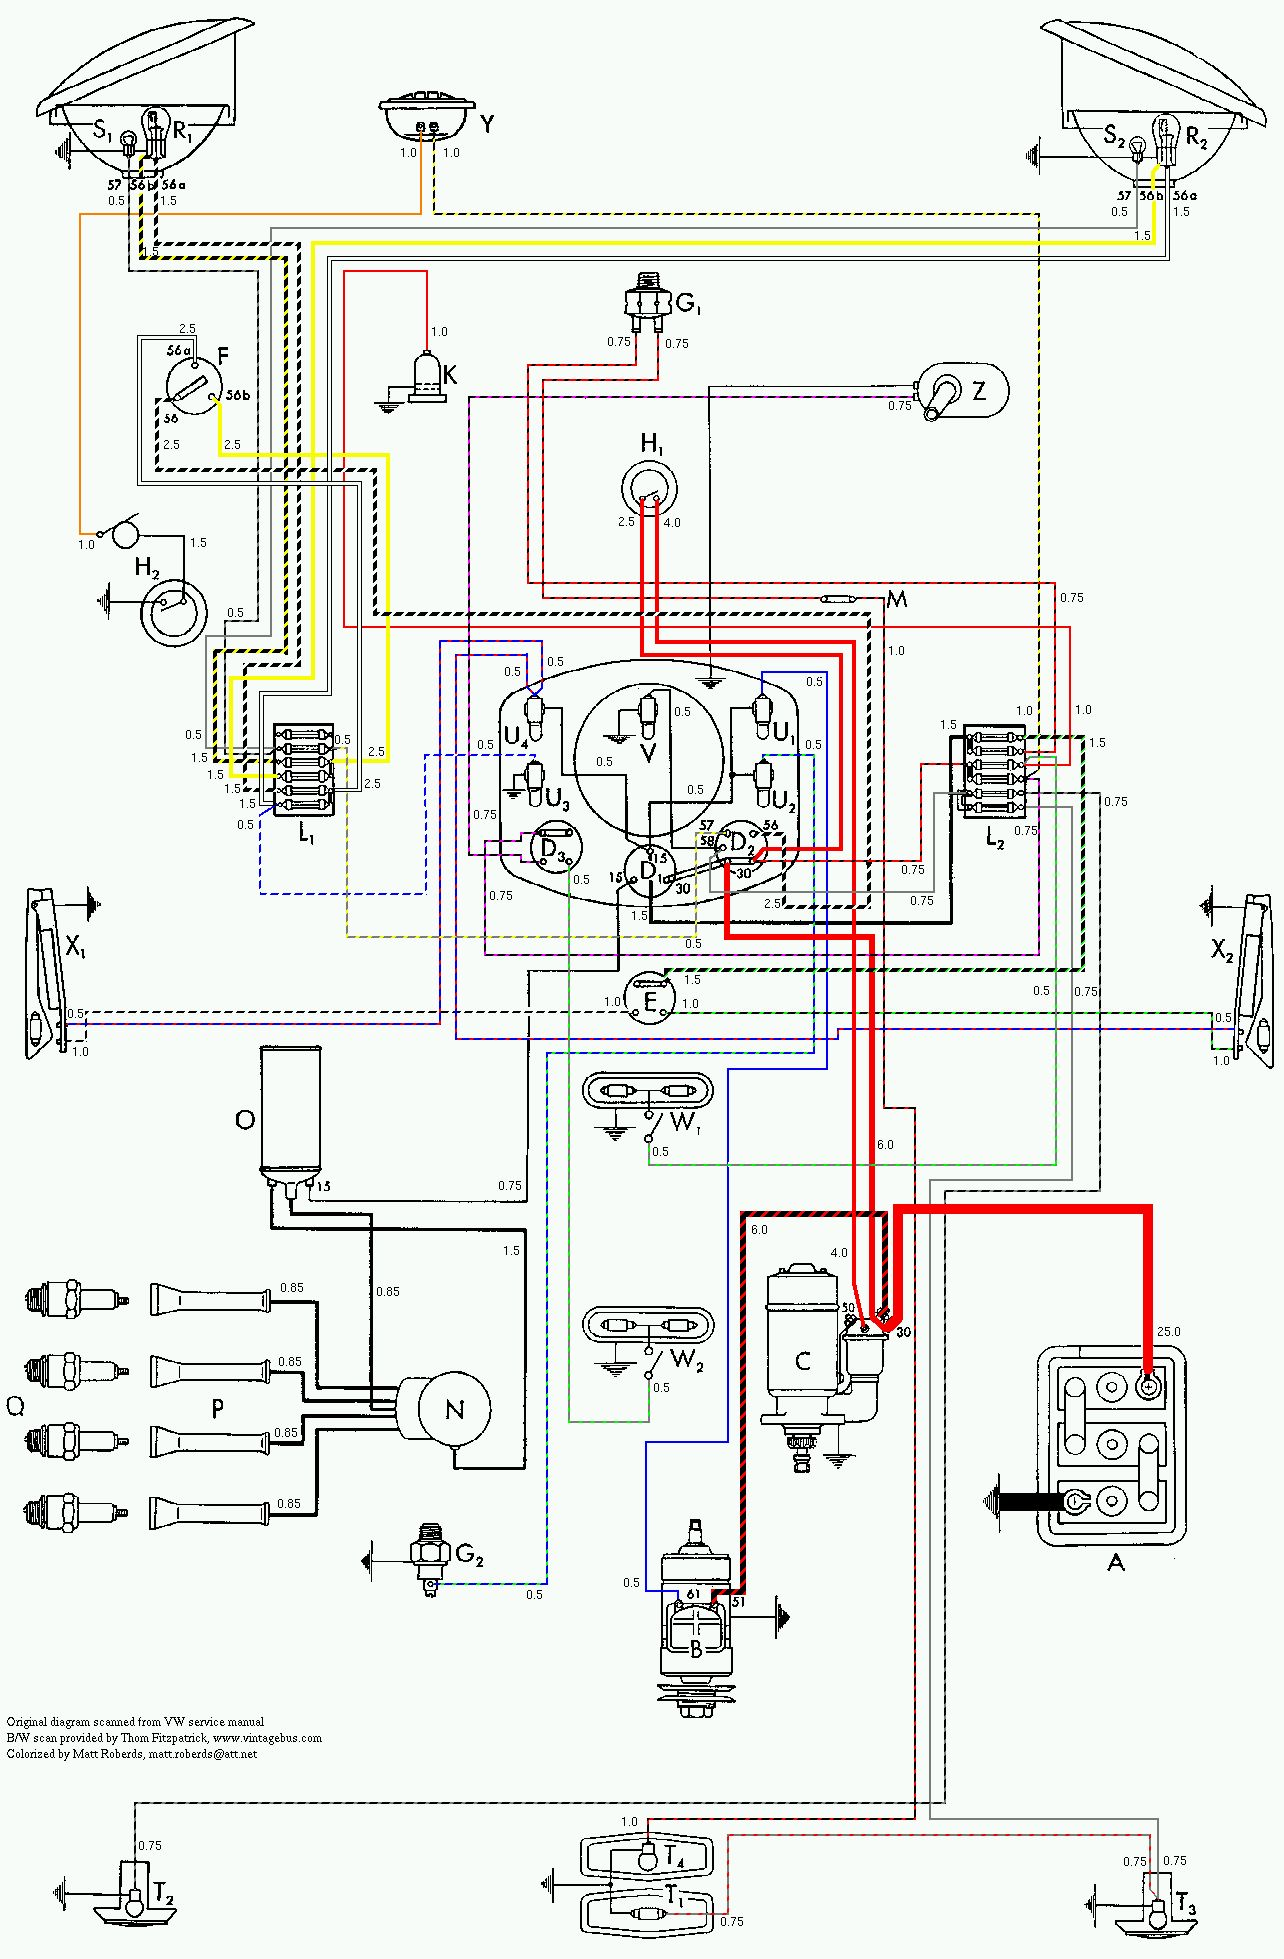 Vw Coil Wiring Library 89 Chevy Alternator Diagram Vintagebus Com Bus And Other Diagrams Rh 1981 Vanagon